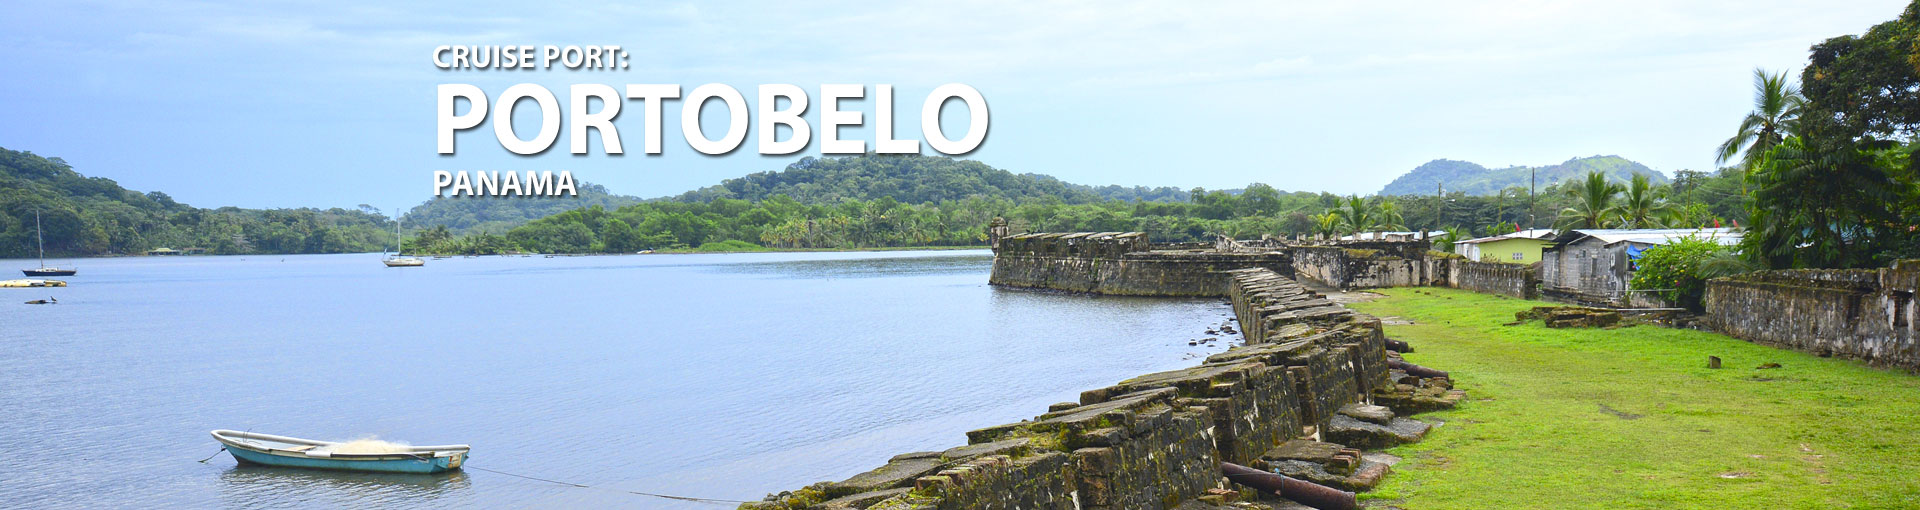 Cruises to Portobelo, Panama